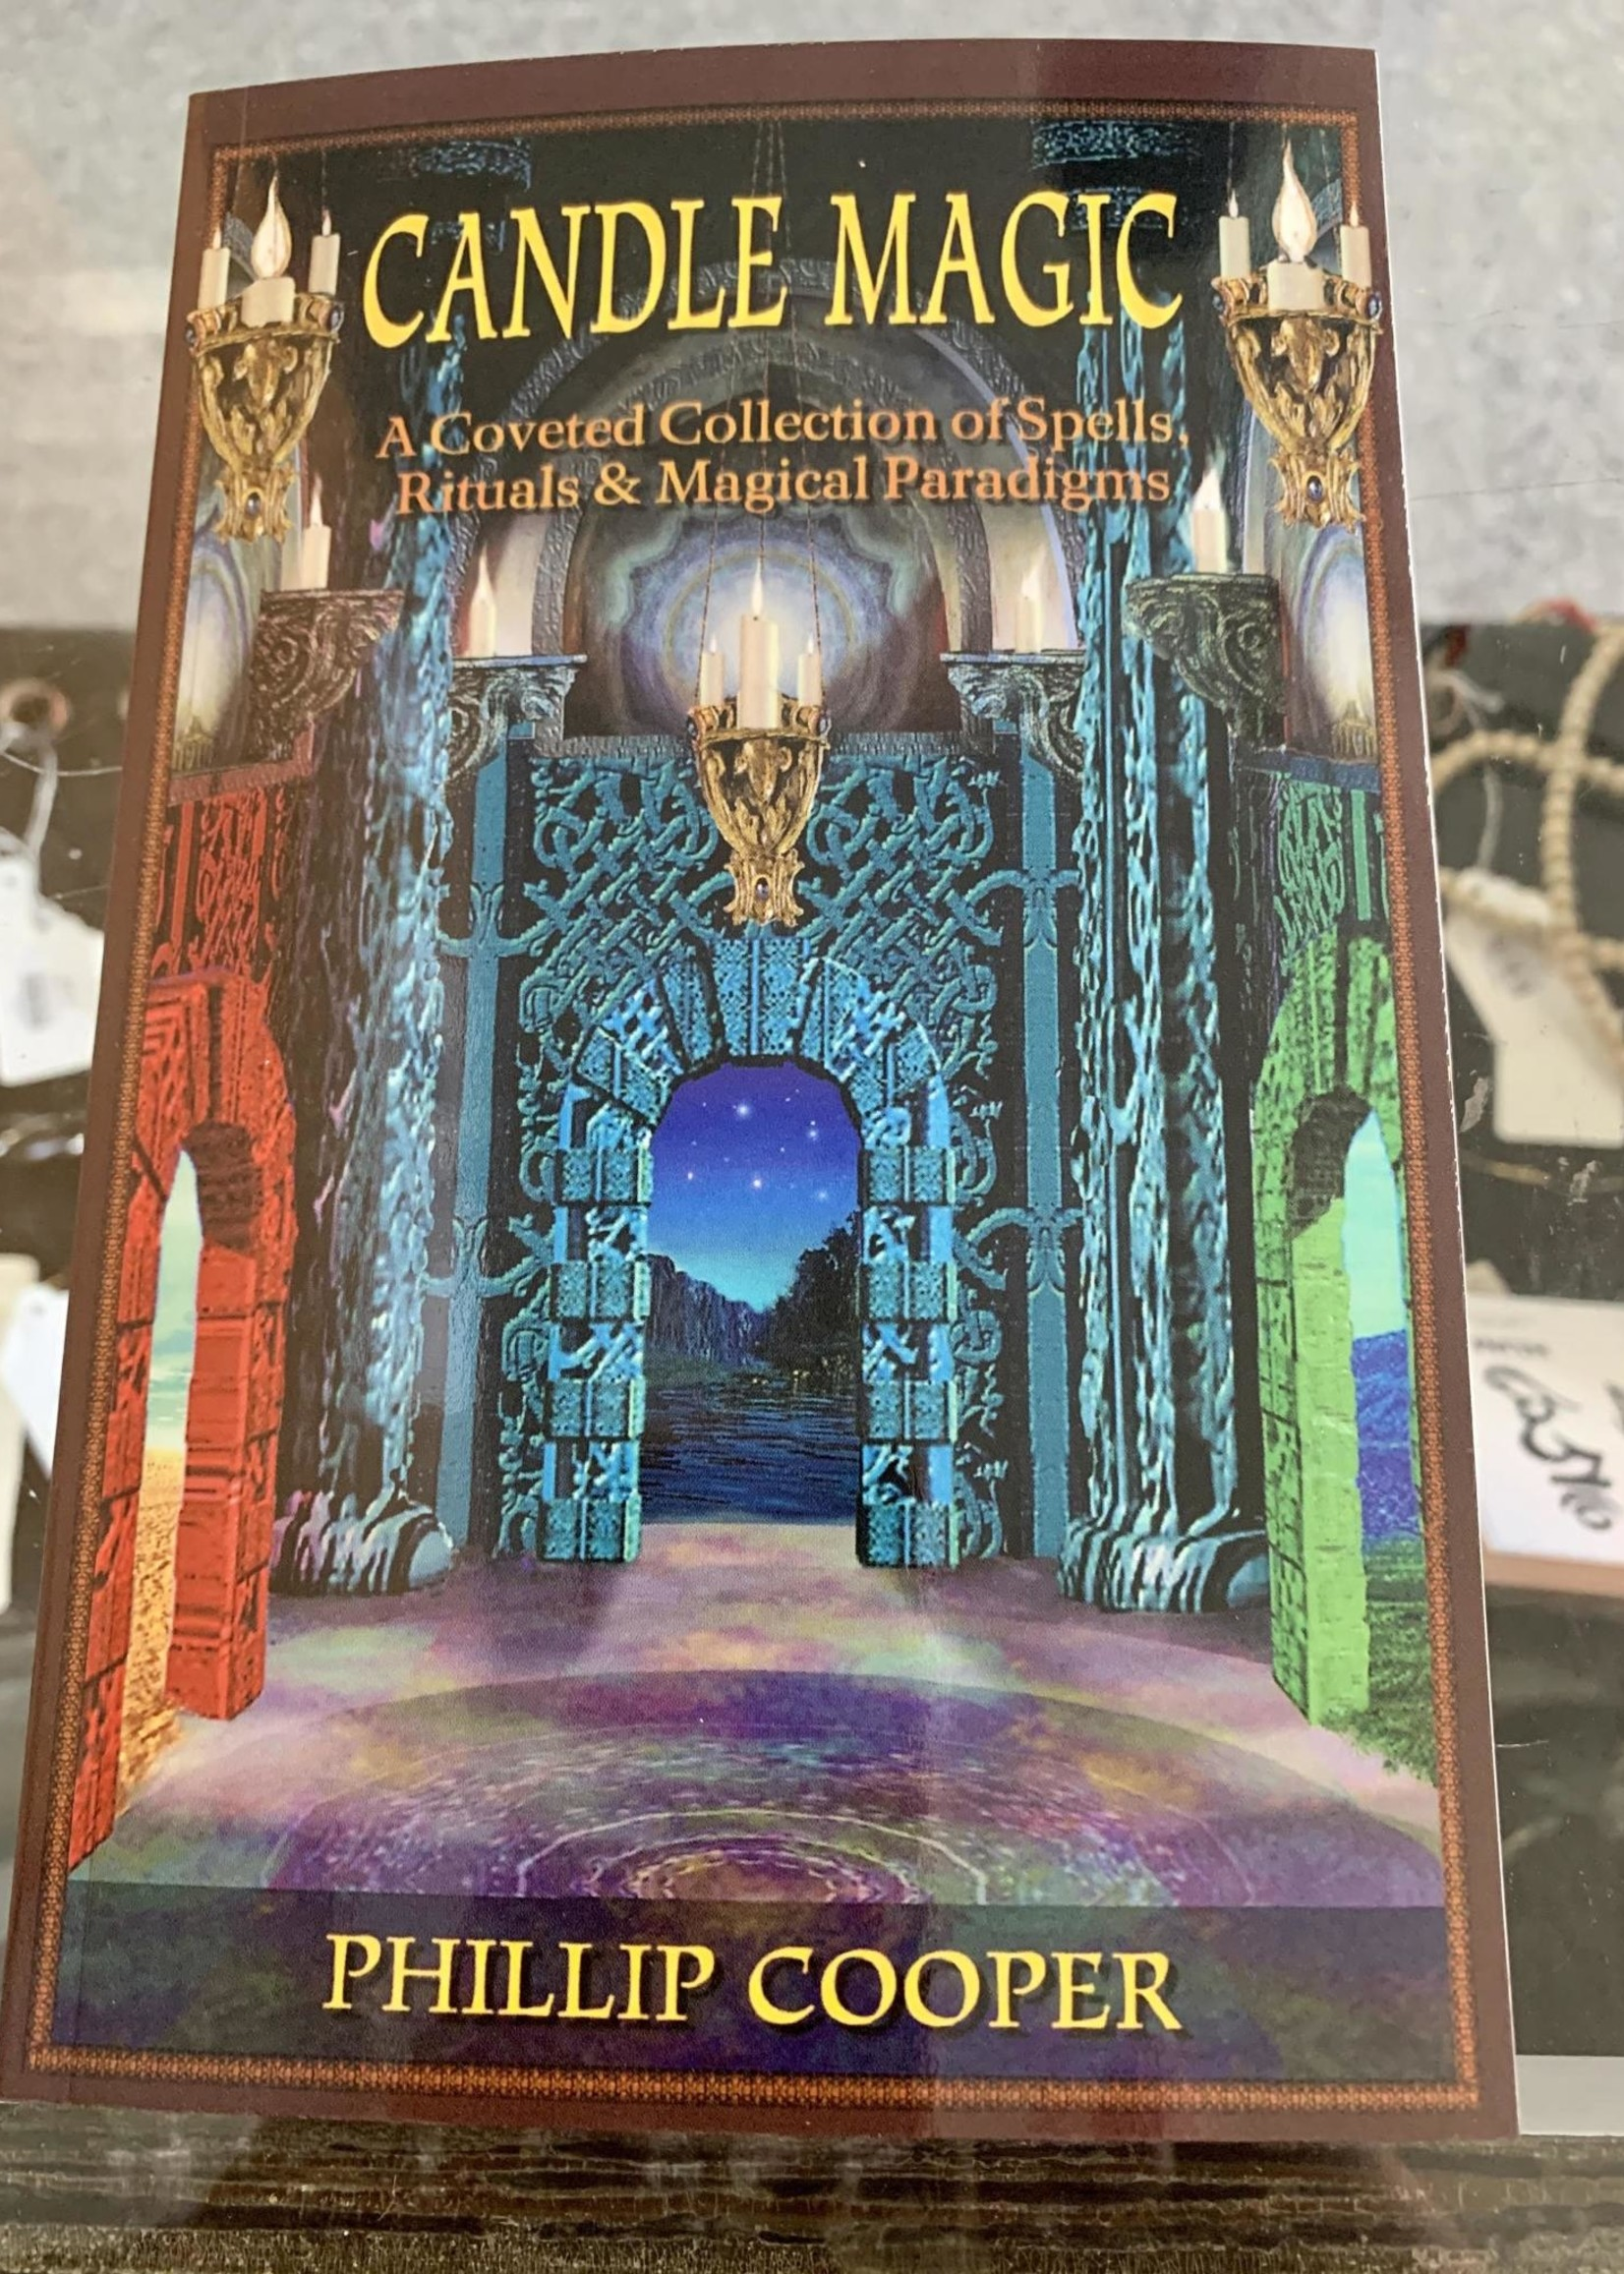 Candle Magic A Coveted Collection of Spells, Rituals, and Magical Paradigms - Phillip Cooper